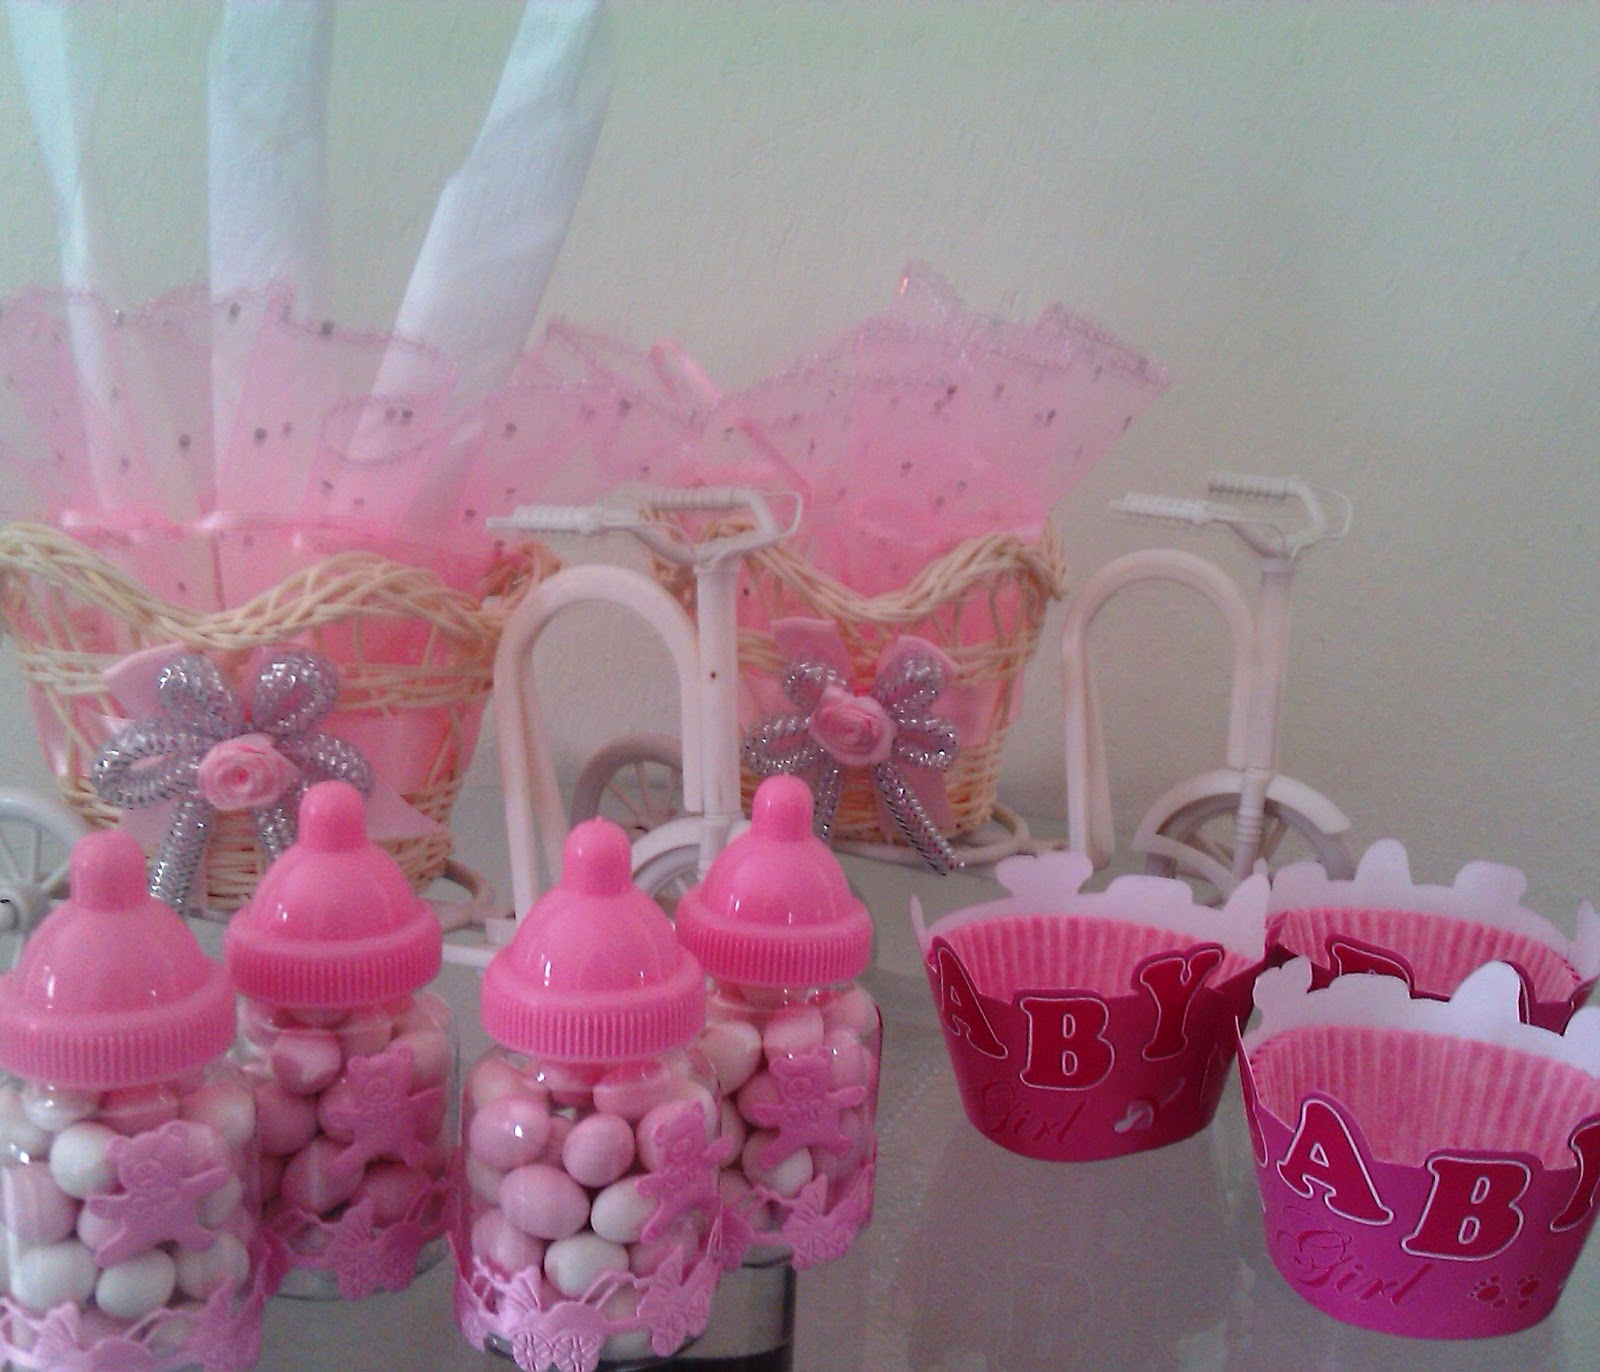 Baby Showers Gifts For Guests: Fadwa Gifts: Baby Shower Guest Gifts